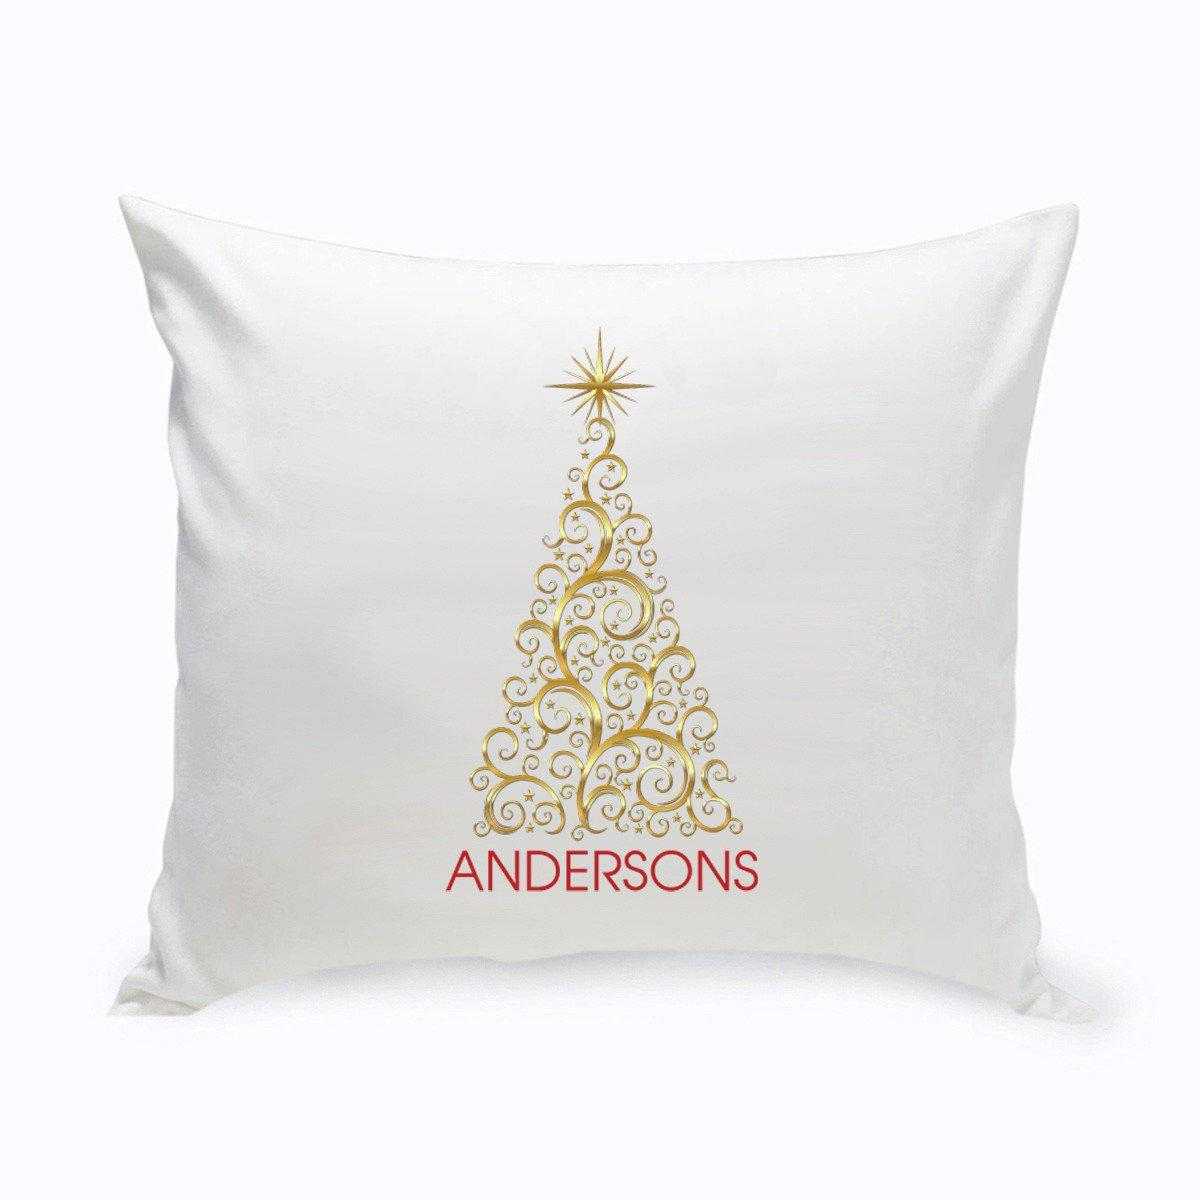 Personalized-Holiday-Throw-Pillows-Gold-Christmas-Tree